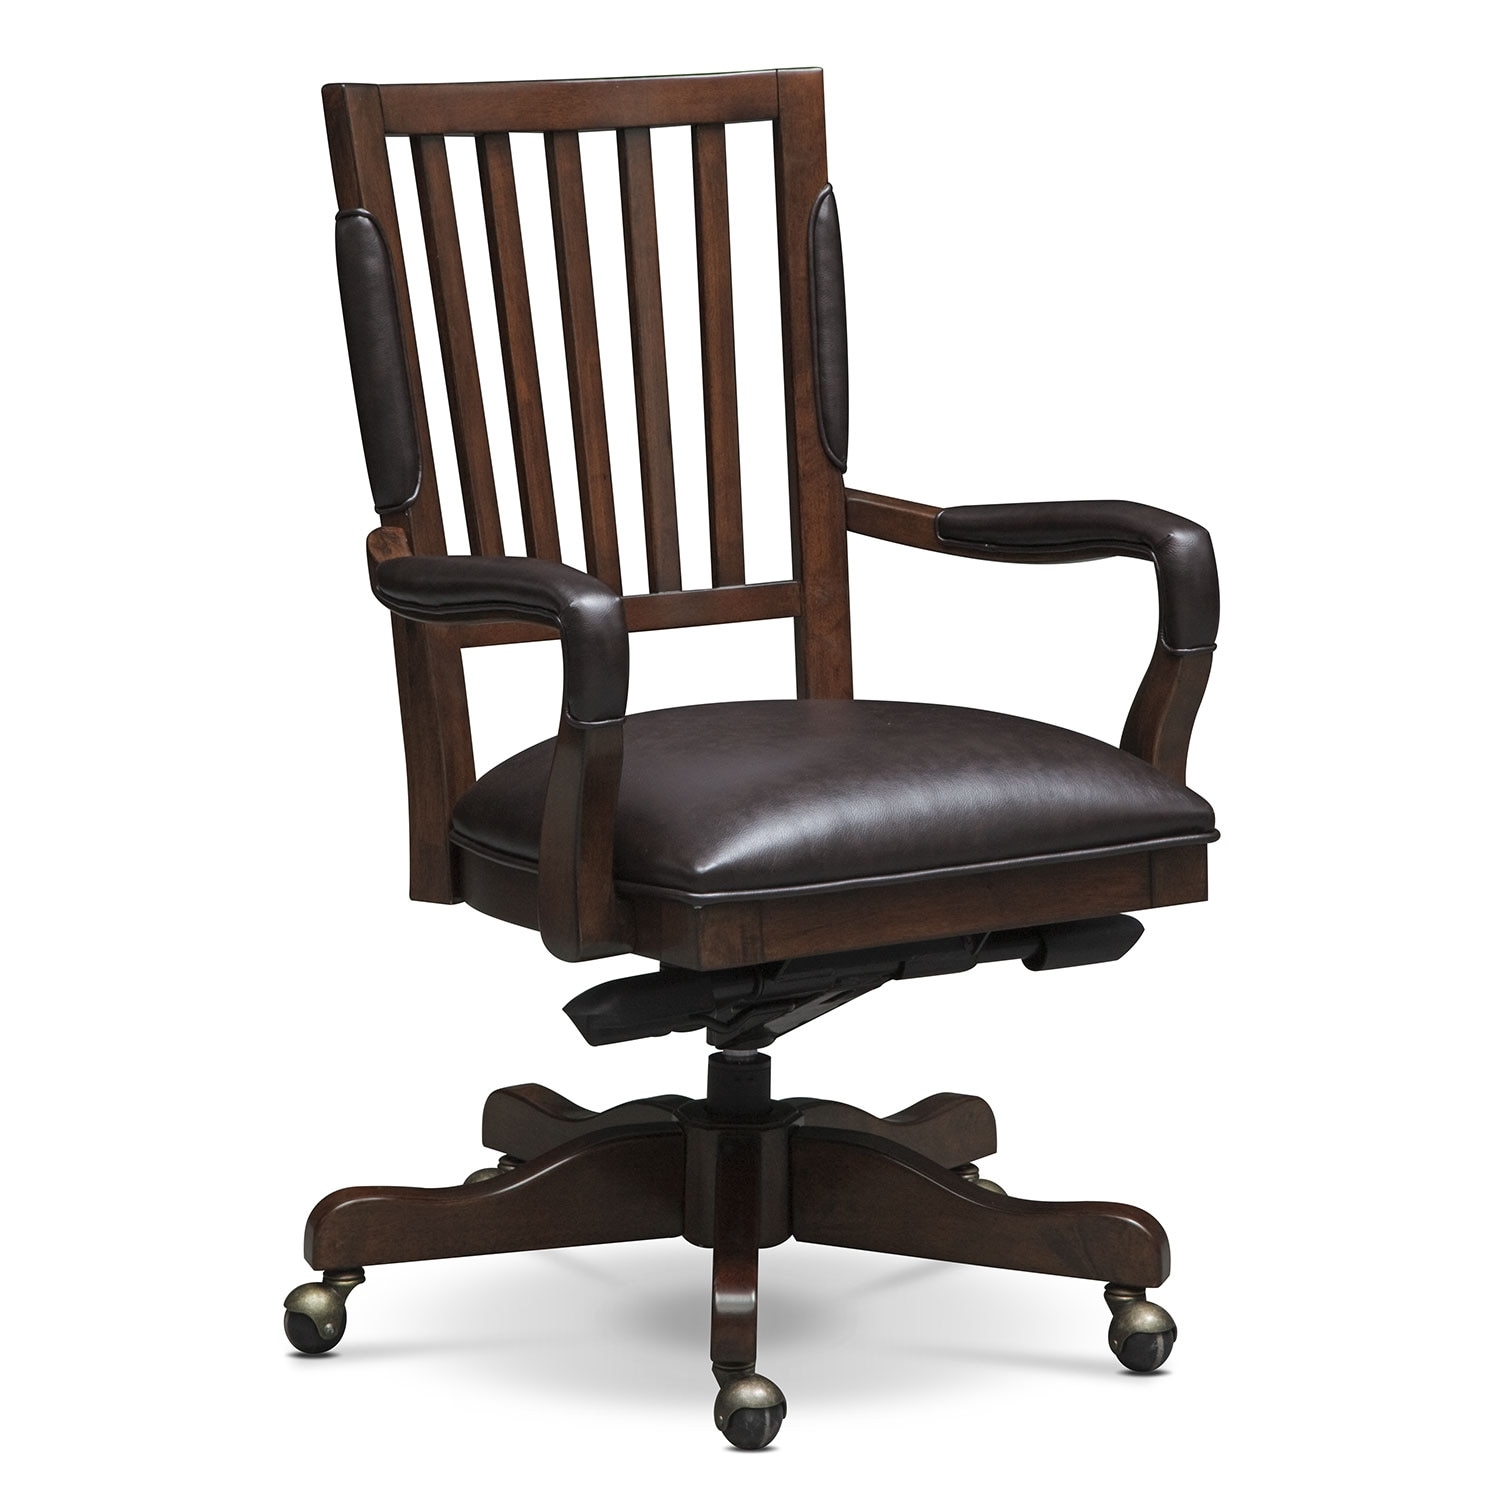 Home Office Furniture - Ashland Office Arm Chair - Cherry